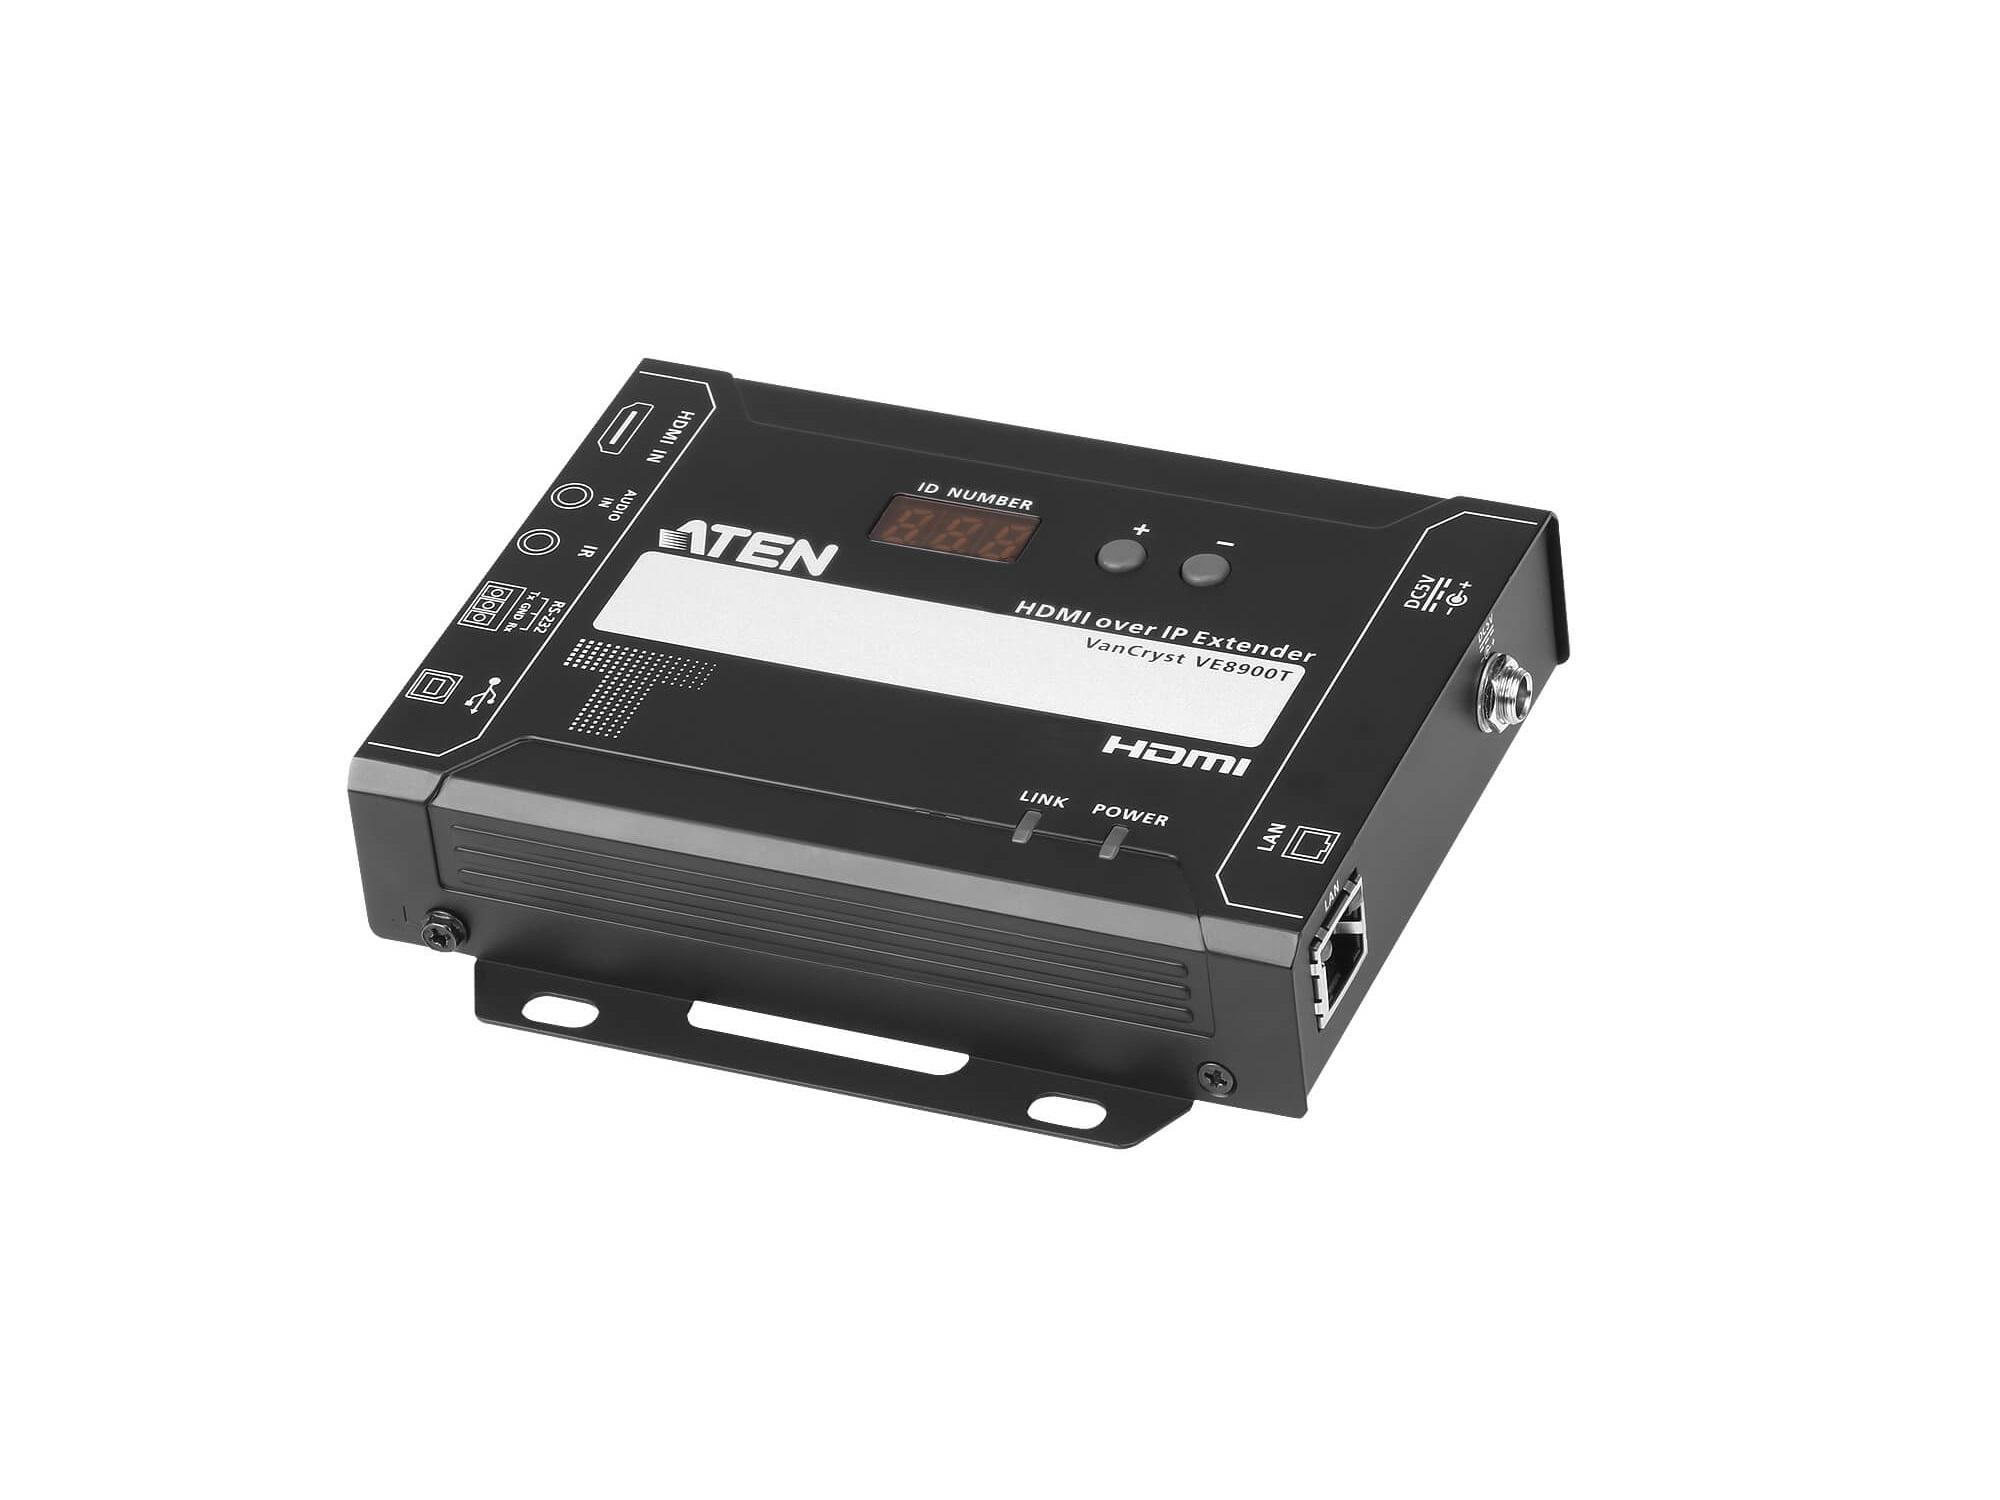 VE8900T HDMI over IP Transmitter by Aten